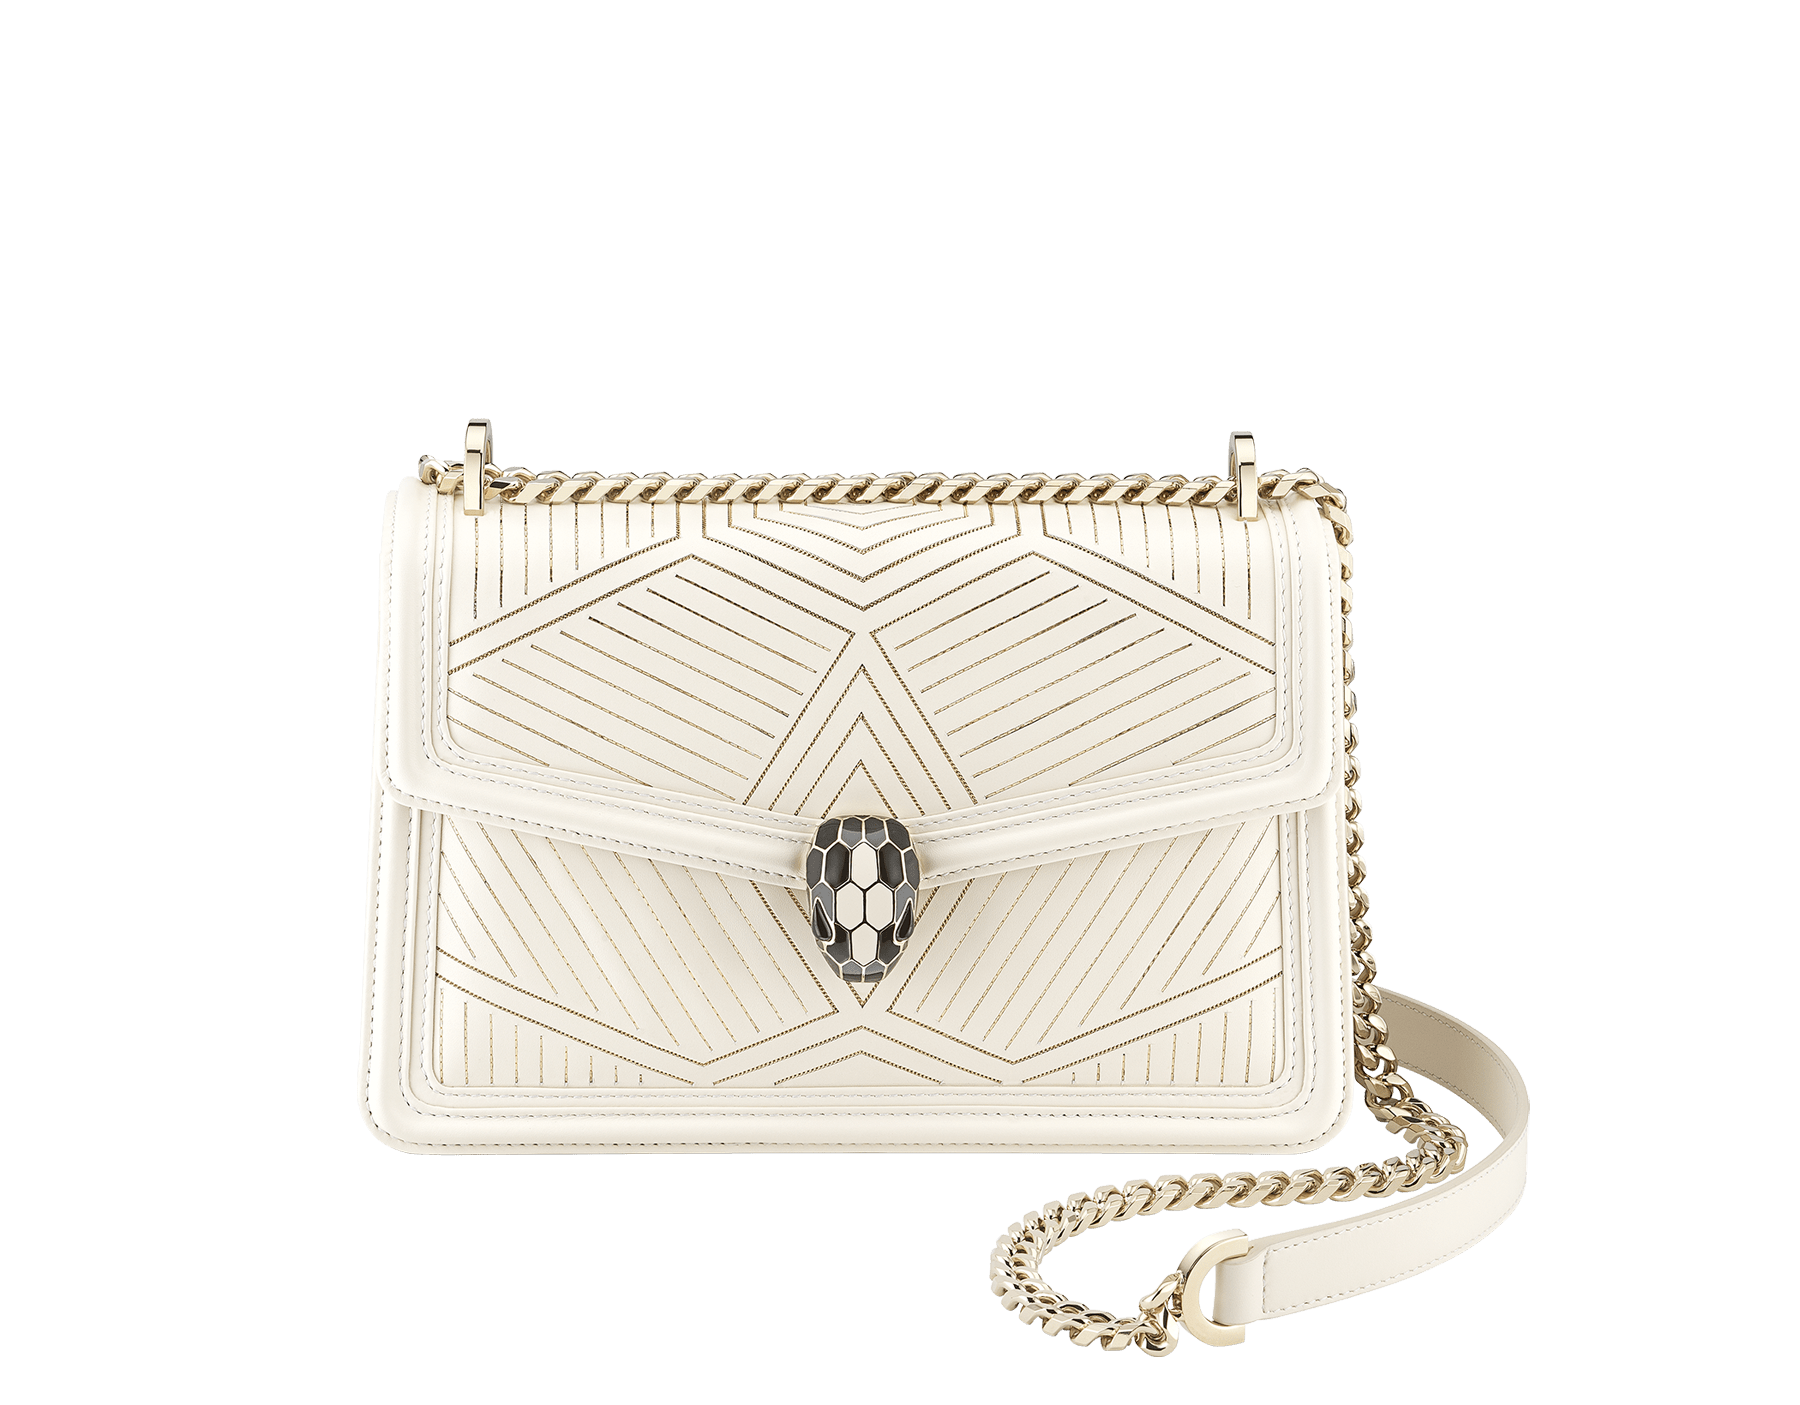 """Serpenti Diamond Blast"" shoulder bag in white agate calf leather, featuring a Whispy Chain motif in light gold finishing. Iconic snakehead closure in light gold-plated brass enriched with black and white agate enamel and black onyx eyes. 288984 image 1"